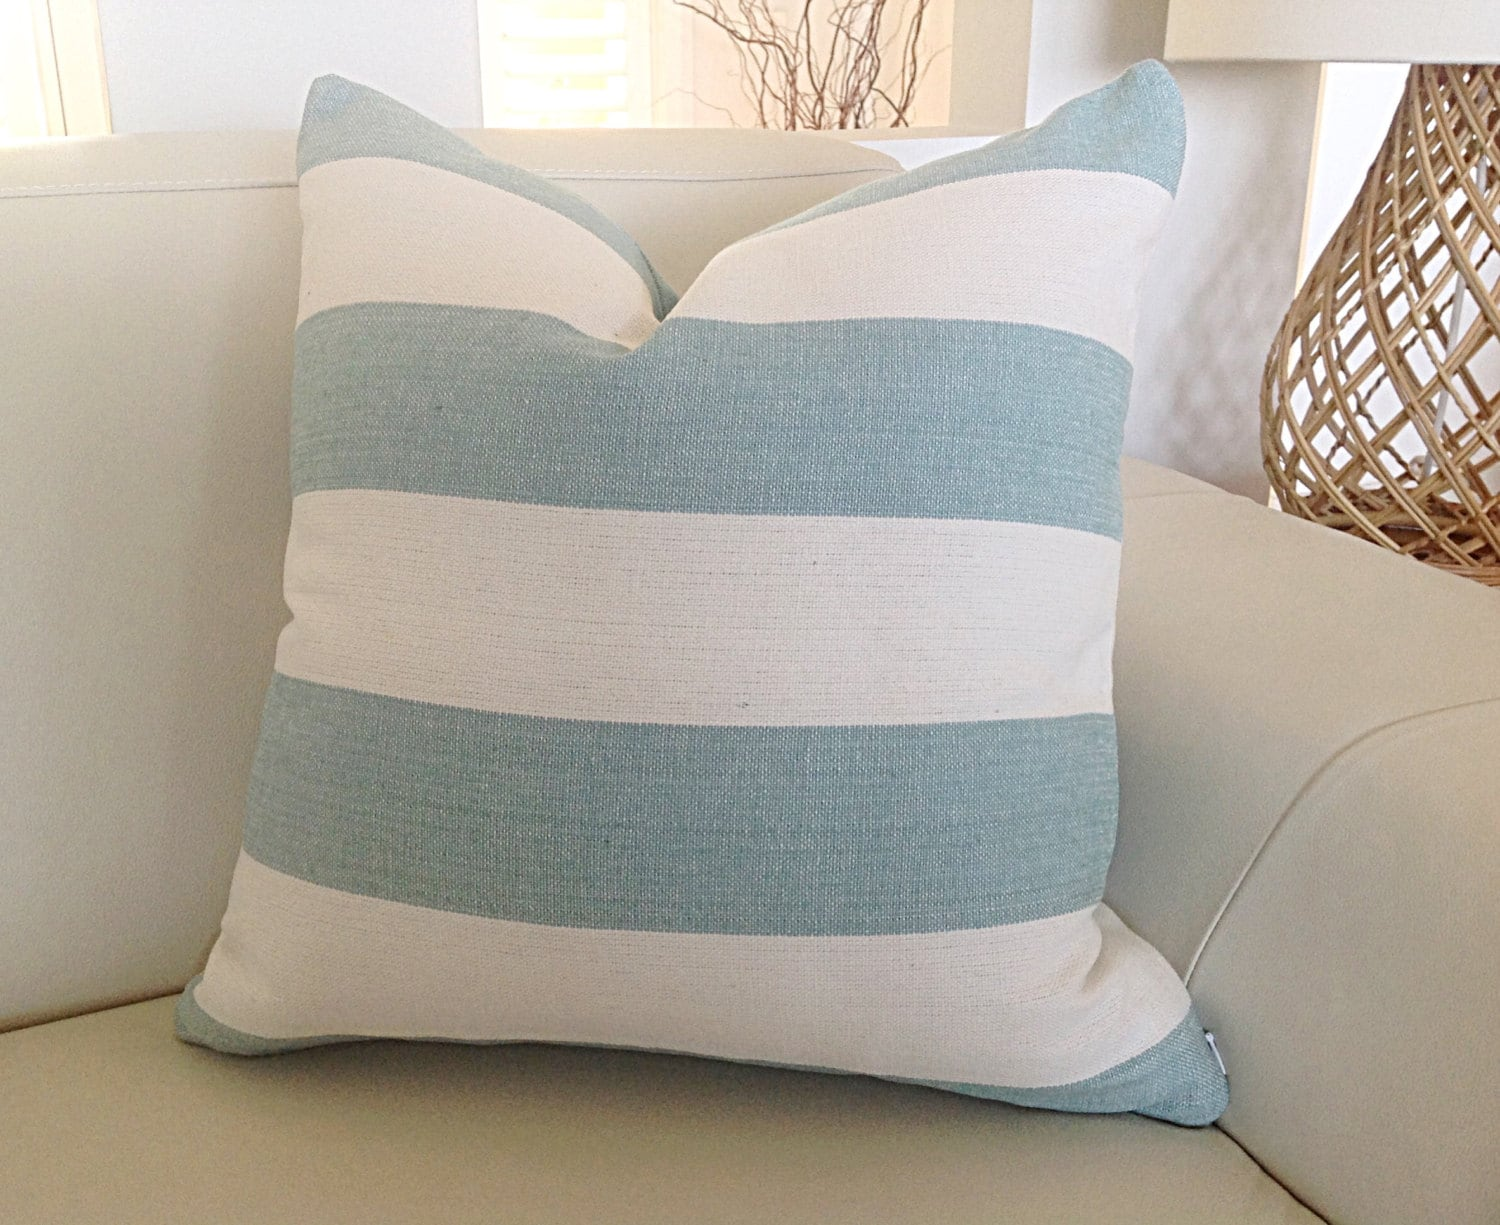 pillow hi palmbeachm sg singapore res pillows moss beach palm seafolly